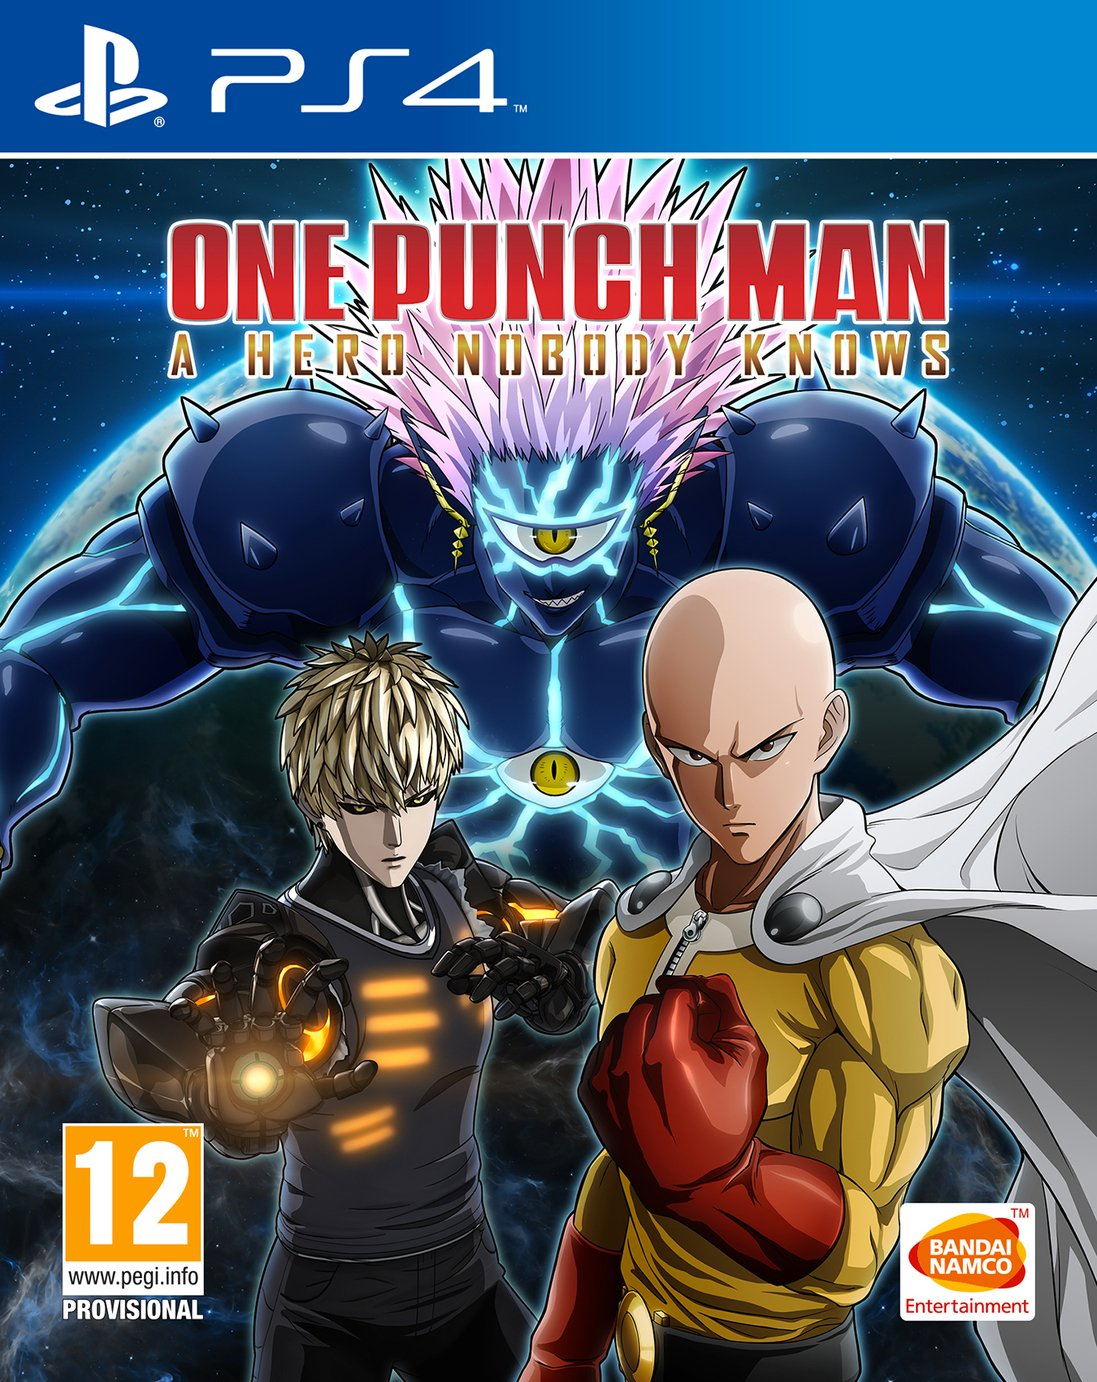 One Punch Man: A Hero Nobody Knows PS4 Pre-Order Game